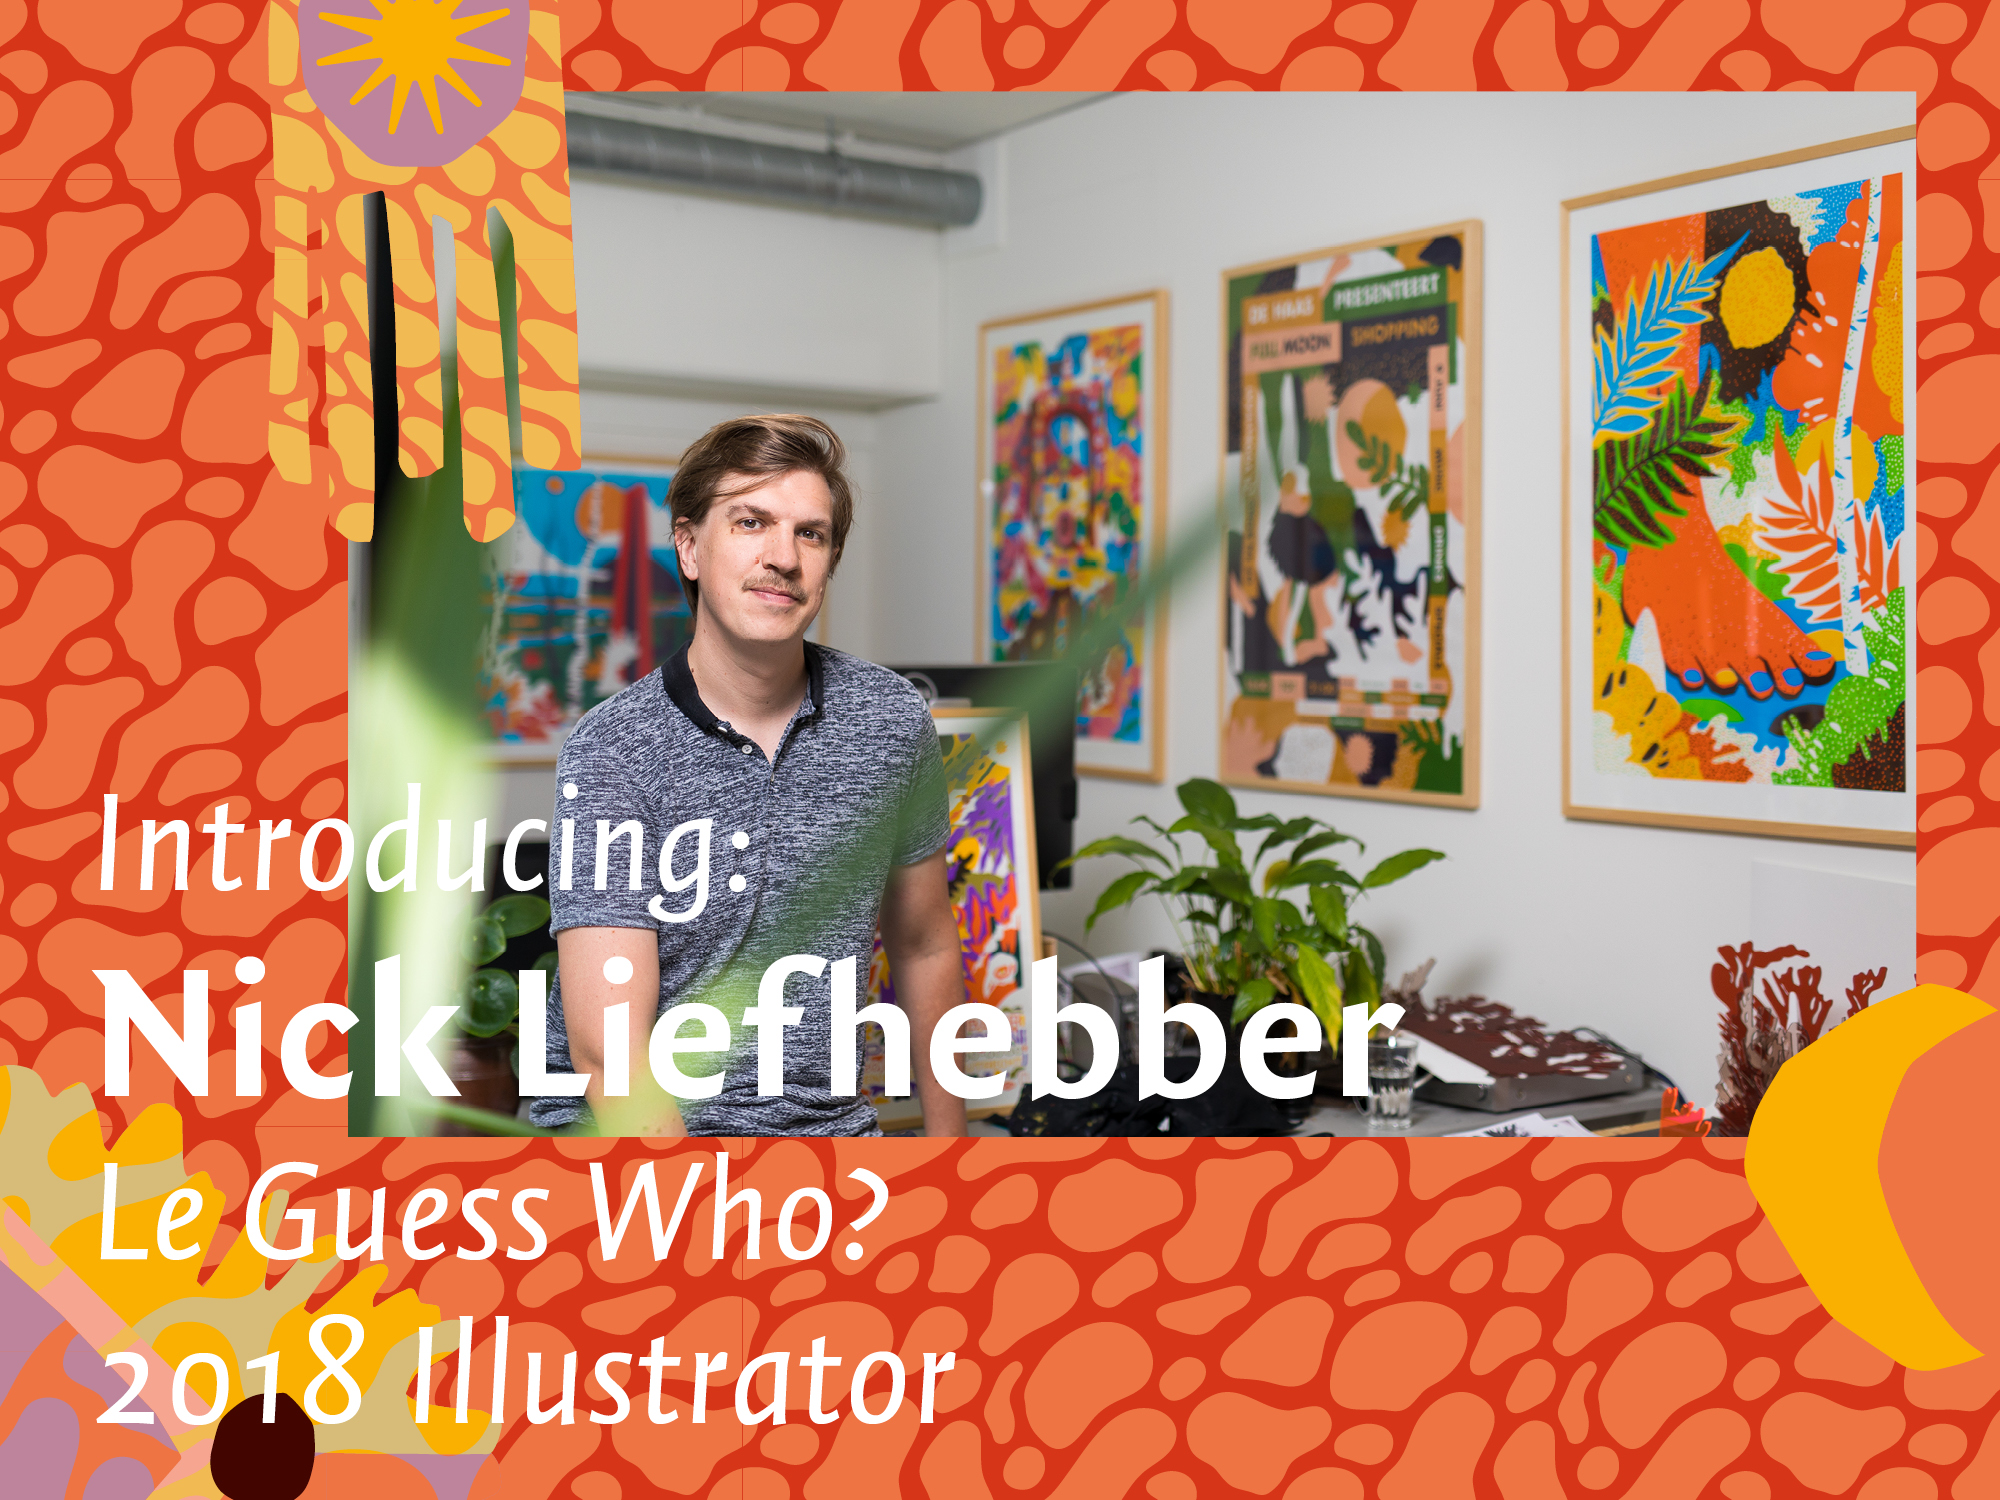 Introducing: Nick Liefhebber, the Le Guess Who? 2018 Illustrator